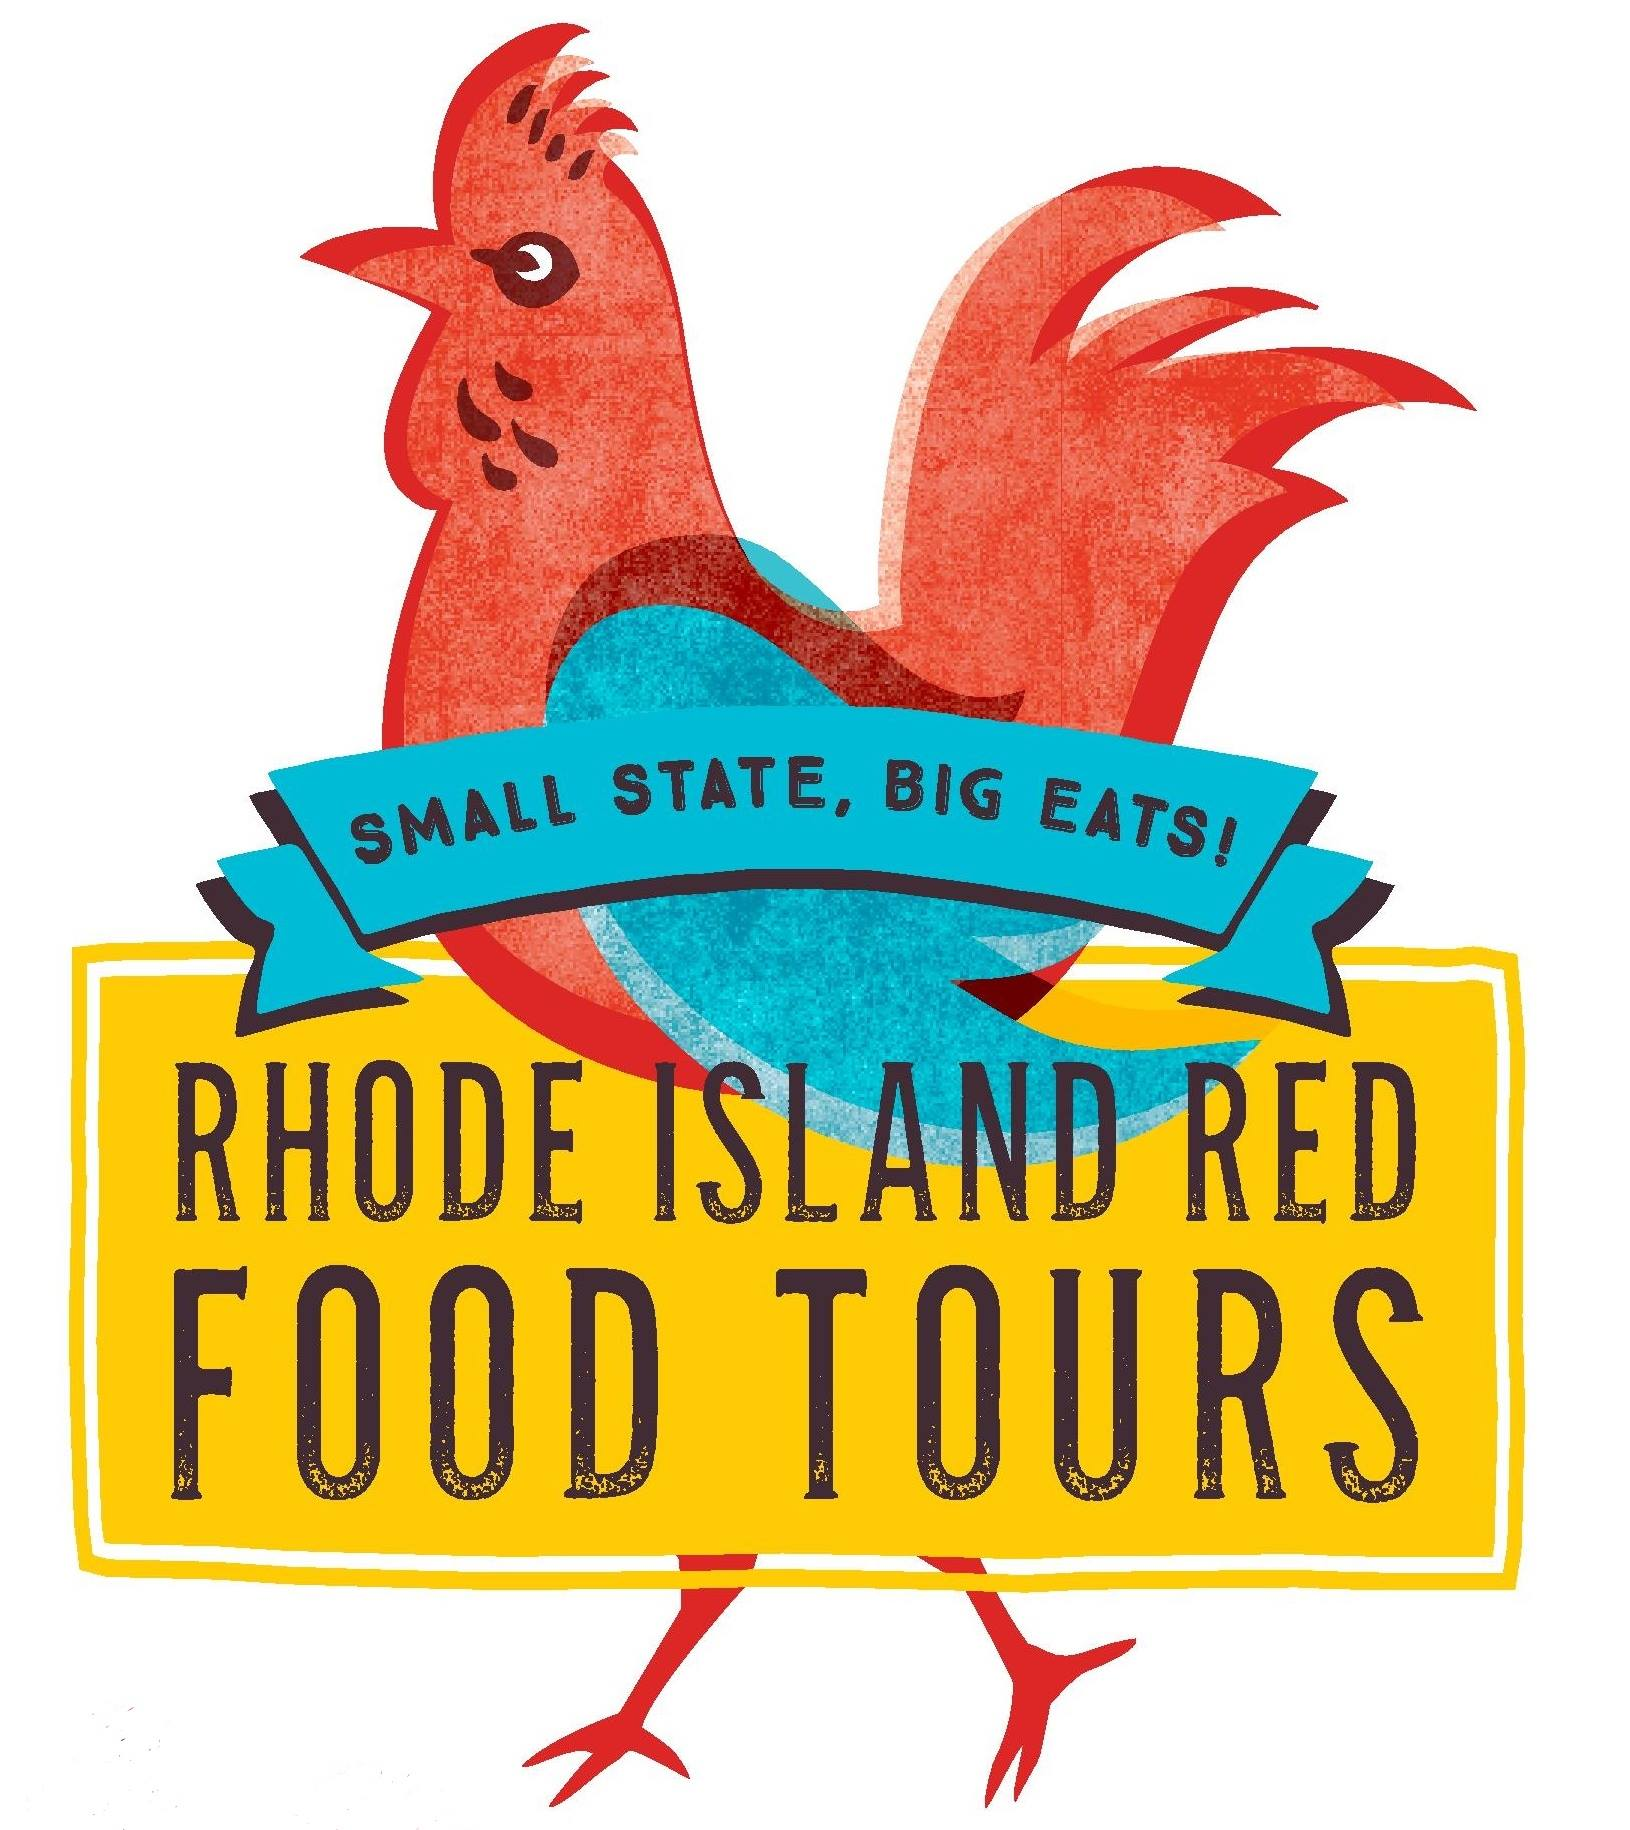 RI-Red-Food-Tours-logo.jpg